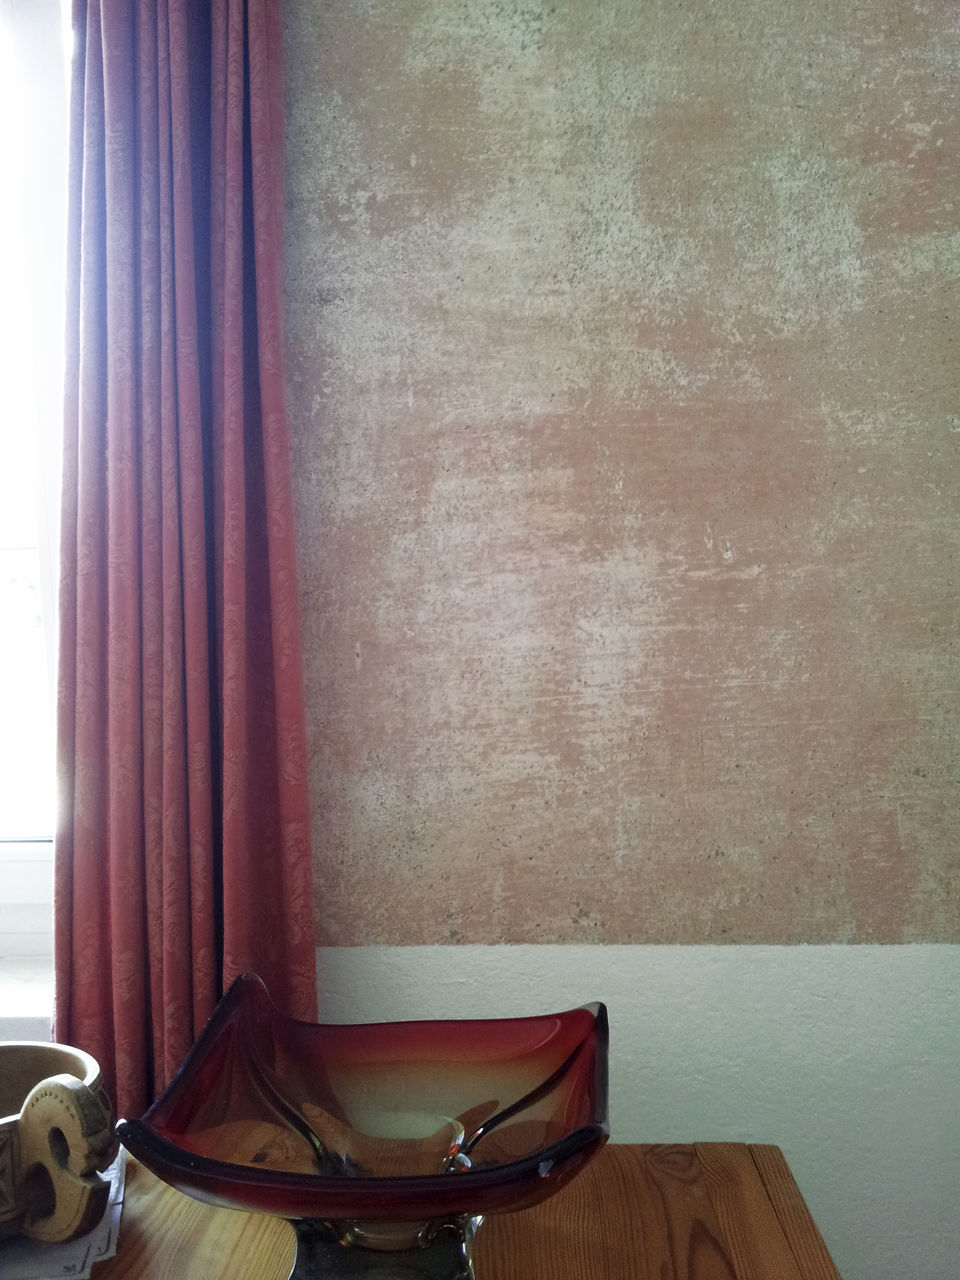 VIEW OF CURTAIN IN MIRROR